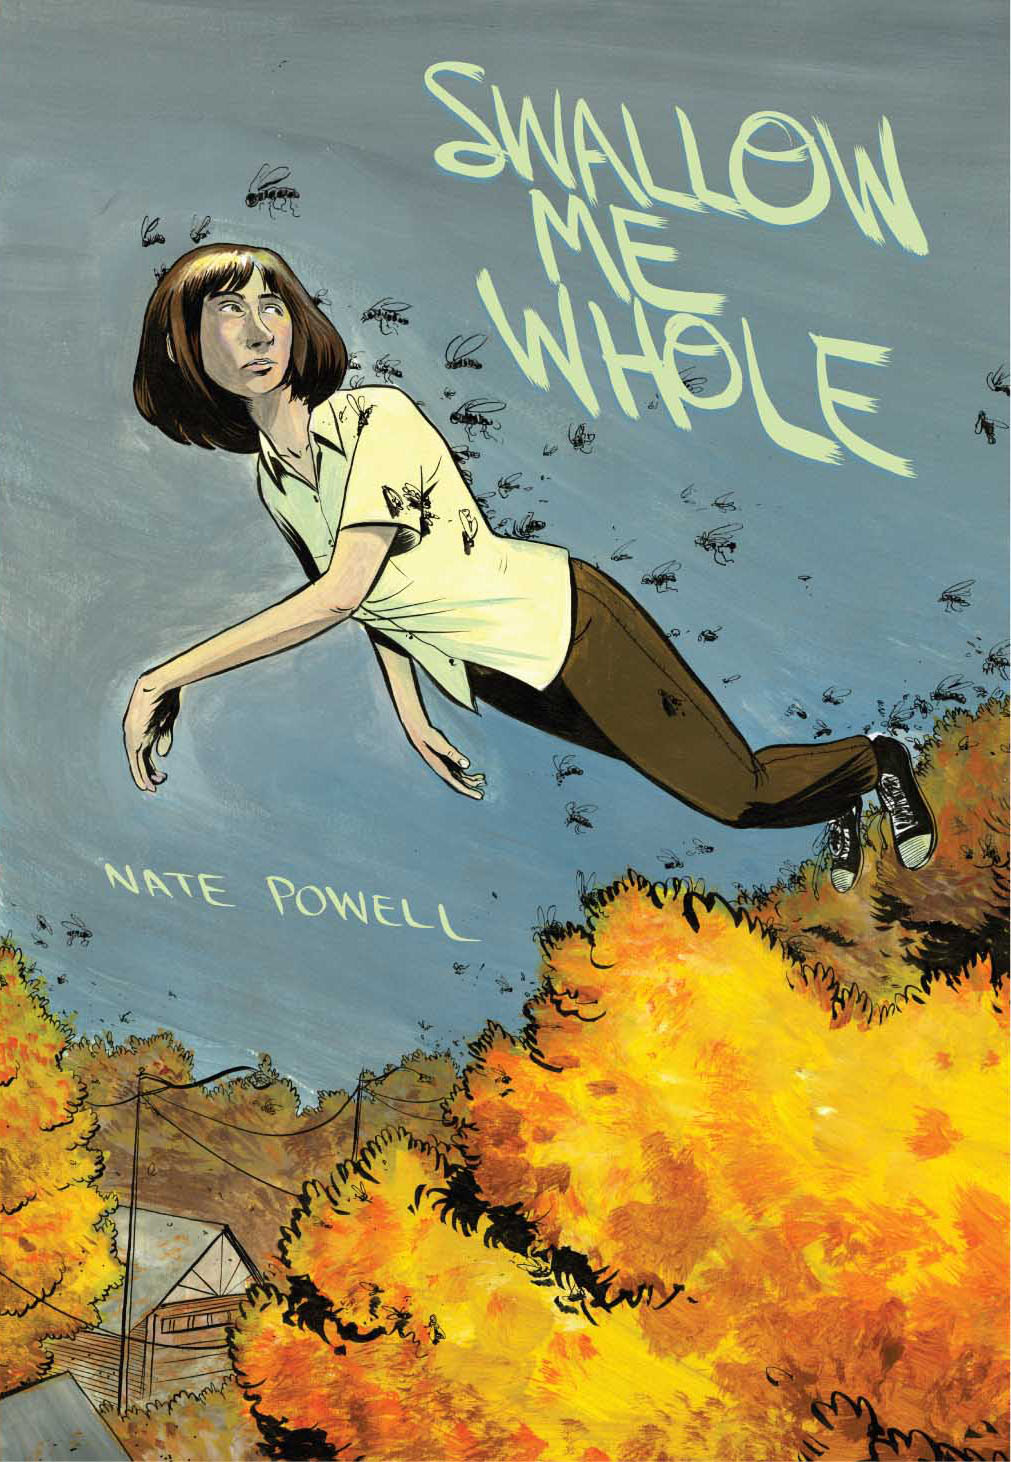 Nate Powell: graphic novelist